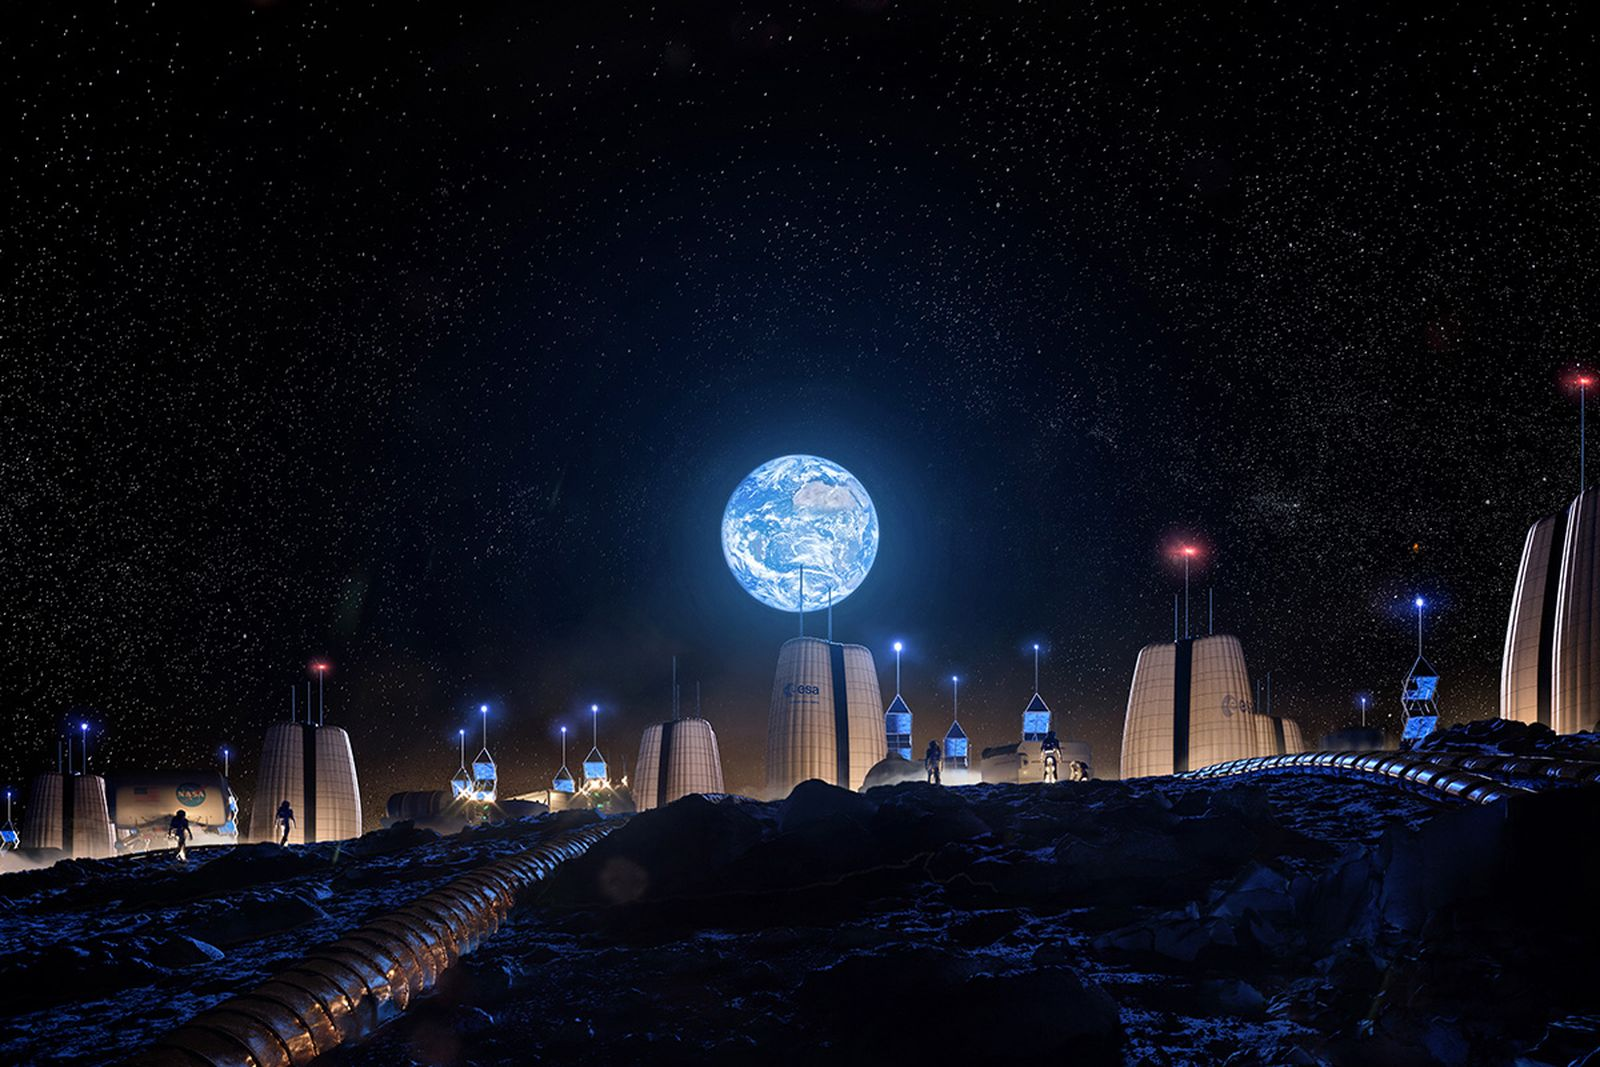 inflatable moon village pictures SOM mit space